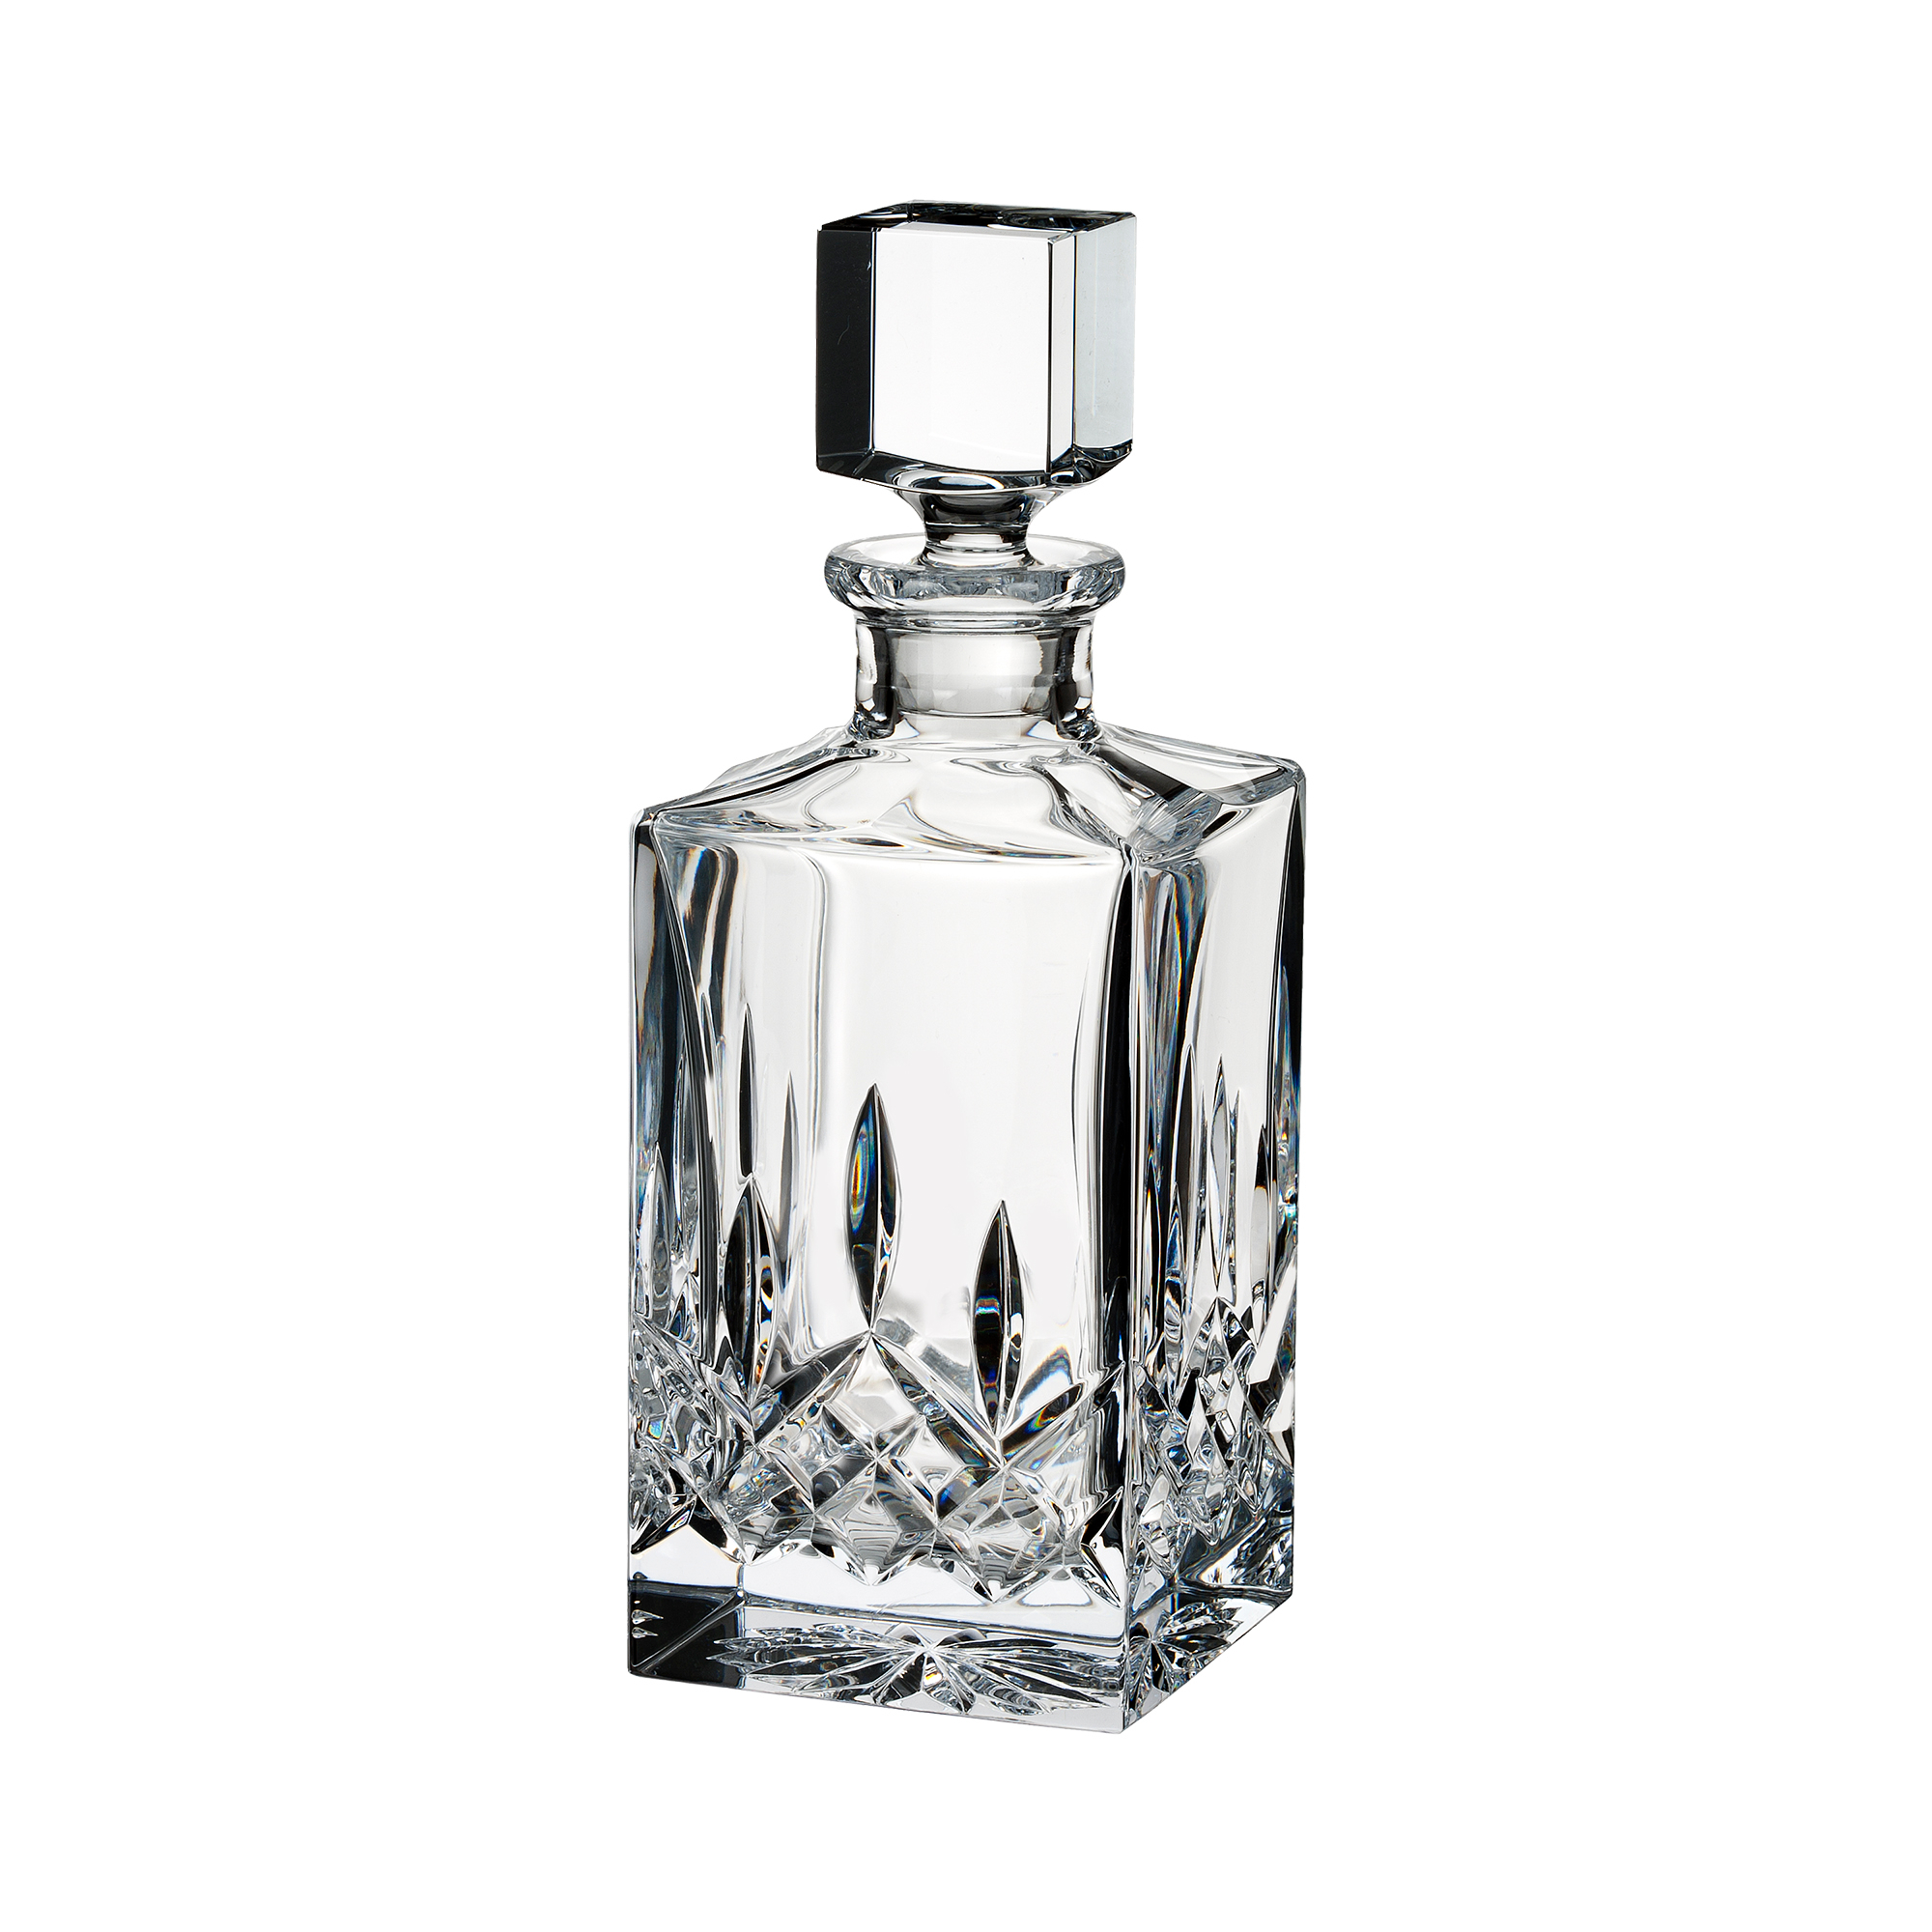 Waterford Lismore Square Decanter, Clear